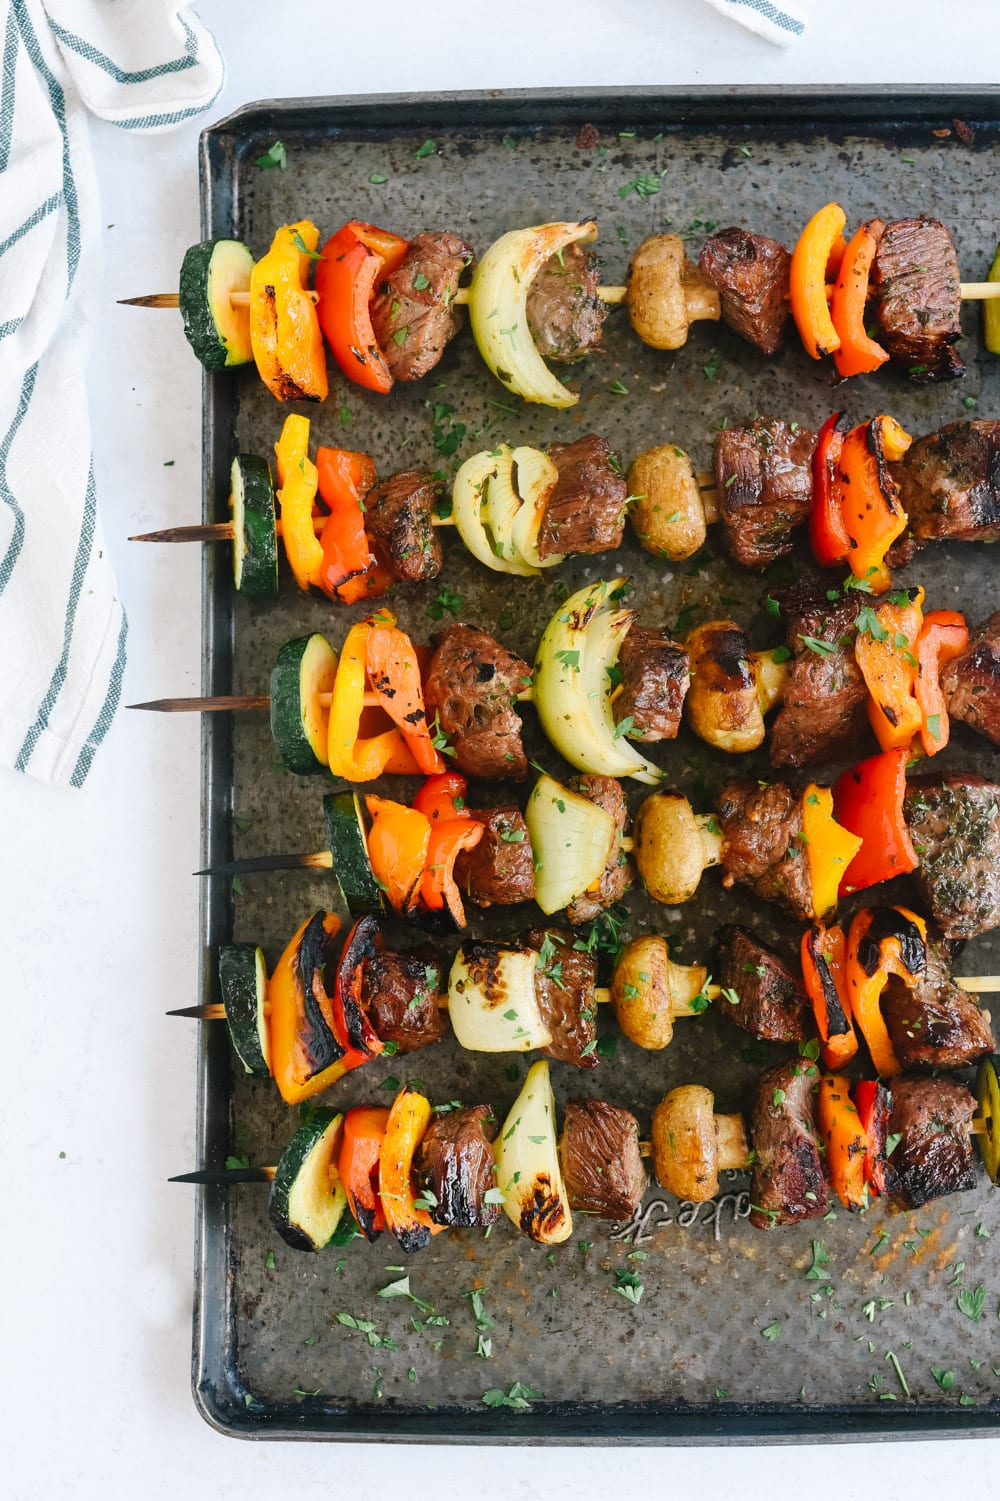 shish kabob on a tray